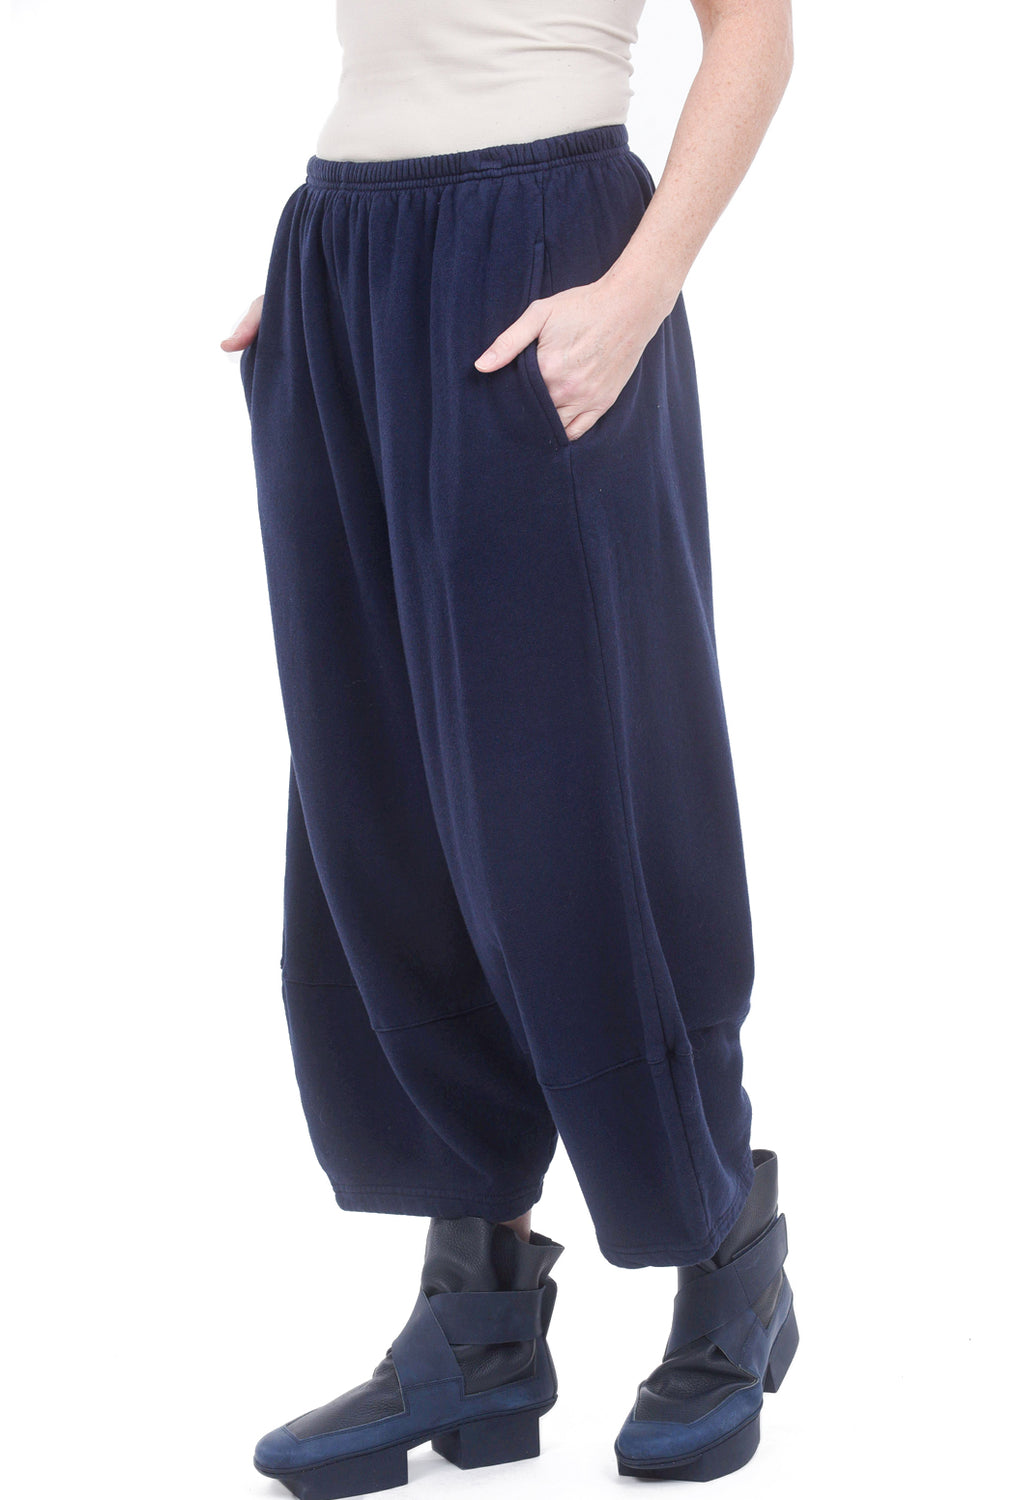 Bryn Walker Oliver Pants, Navy